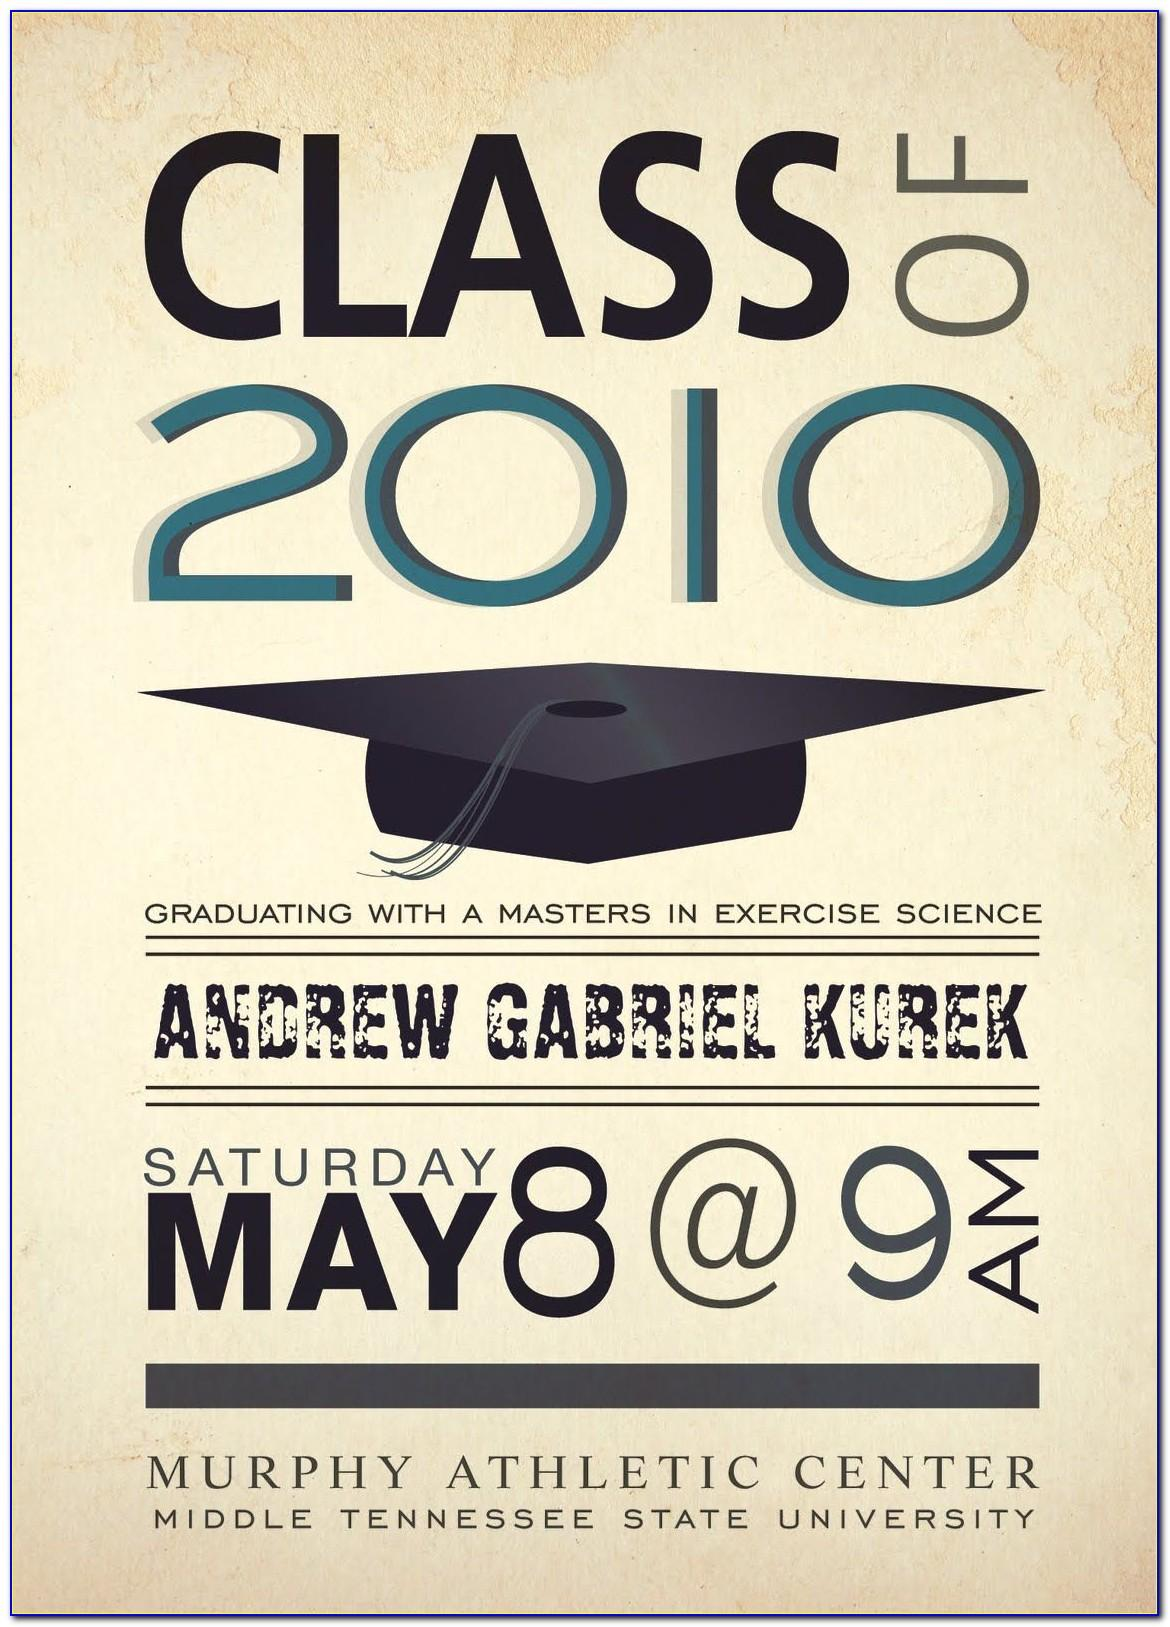 Middle Tennessee State University Graduation Announcements